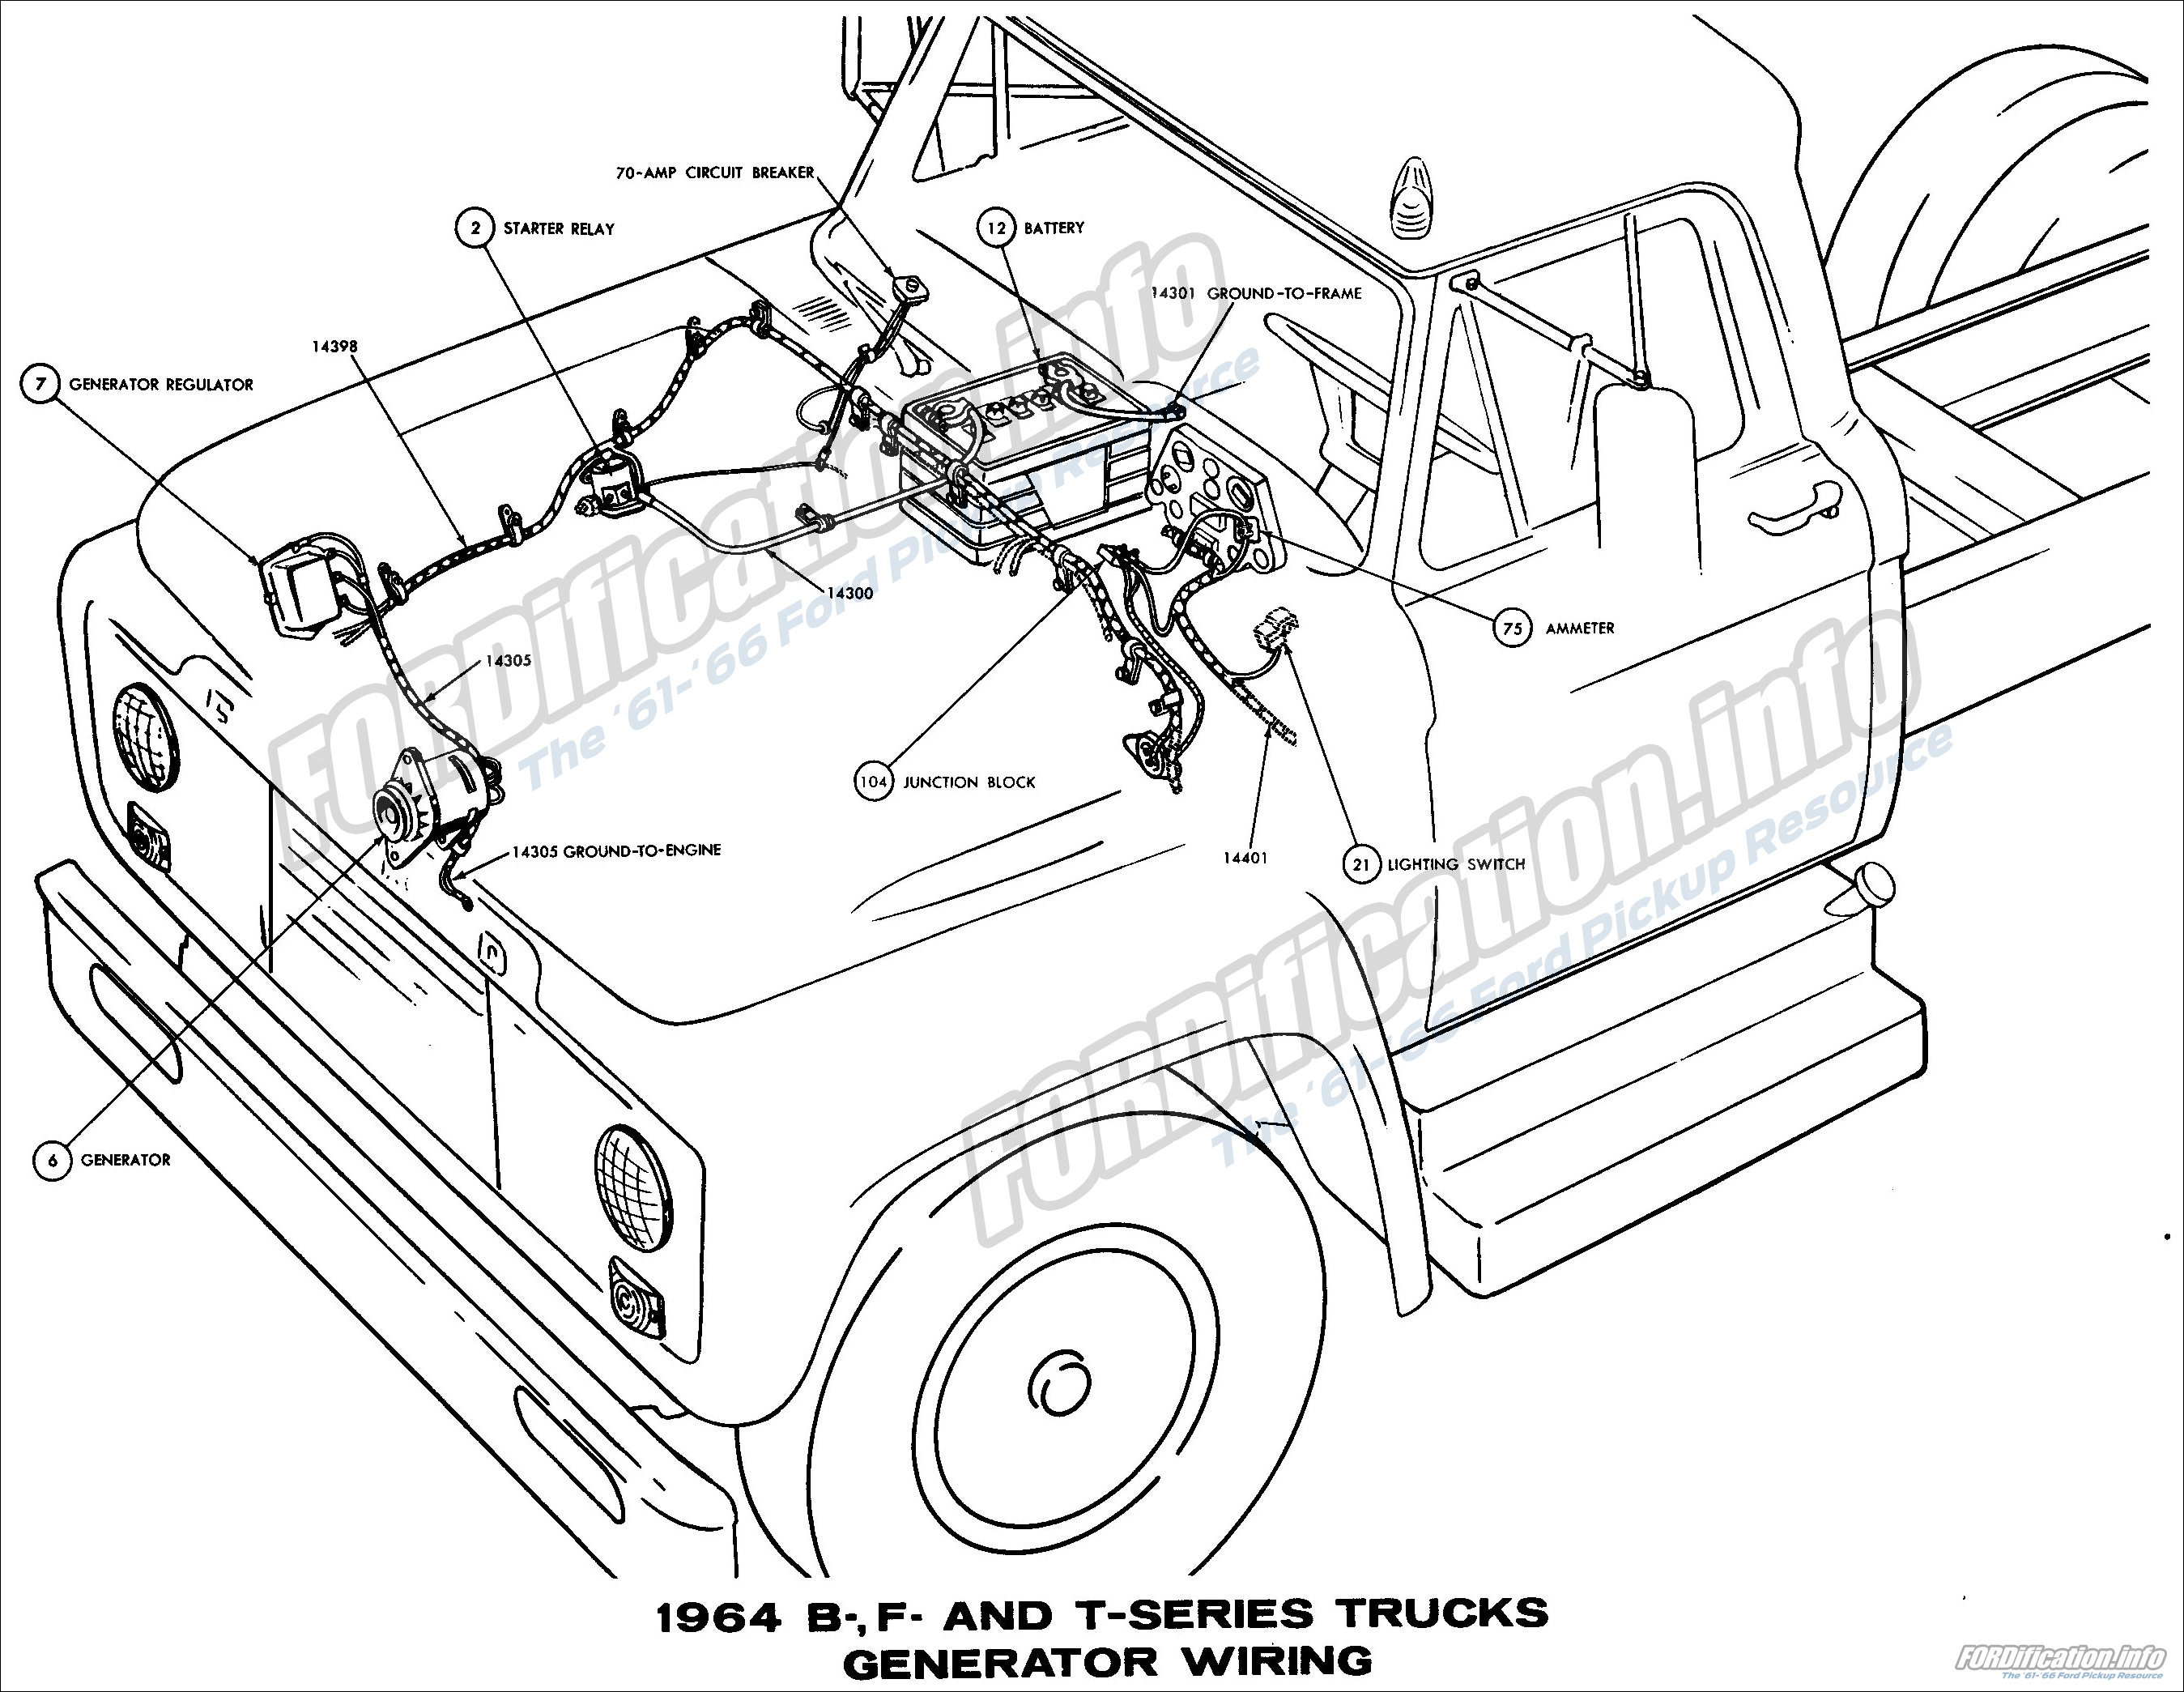 72 blazer wiring diagram 1972 chevrolet blazer wiring diagram images 1957 ford truck wiring diagram 70 ford pickup 1972 f100